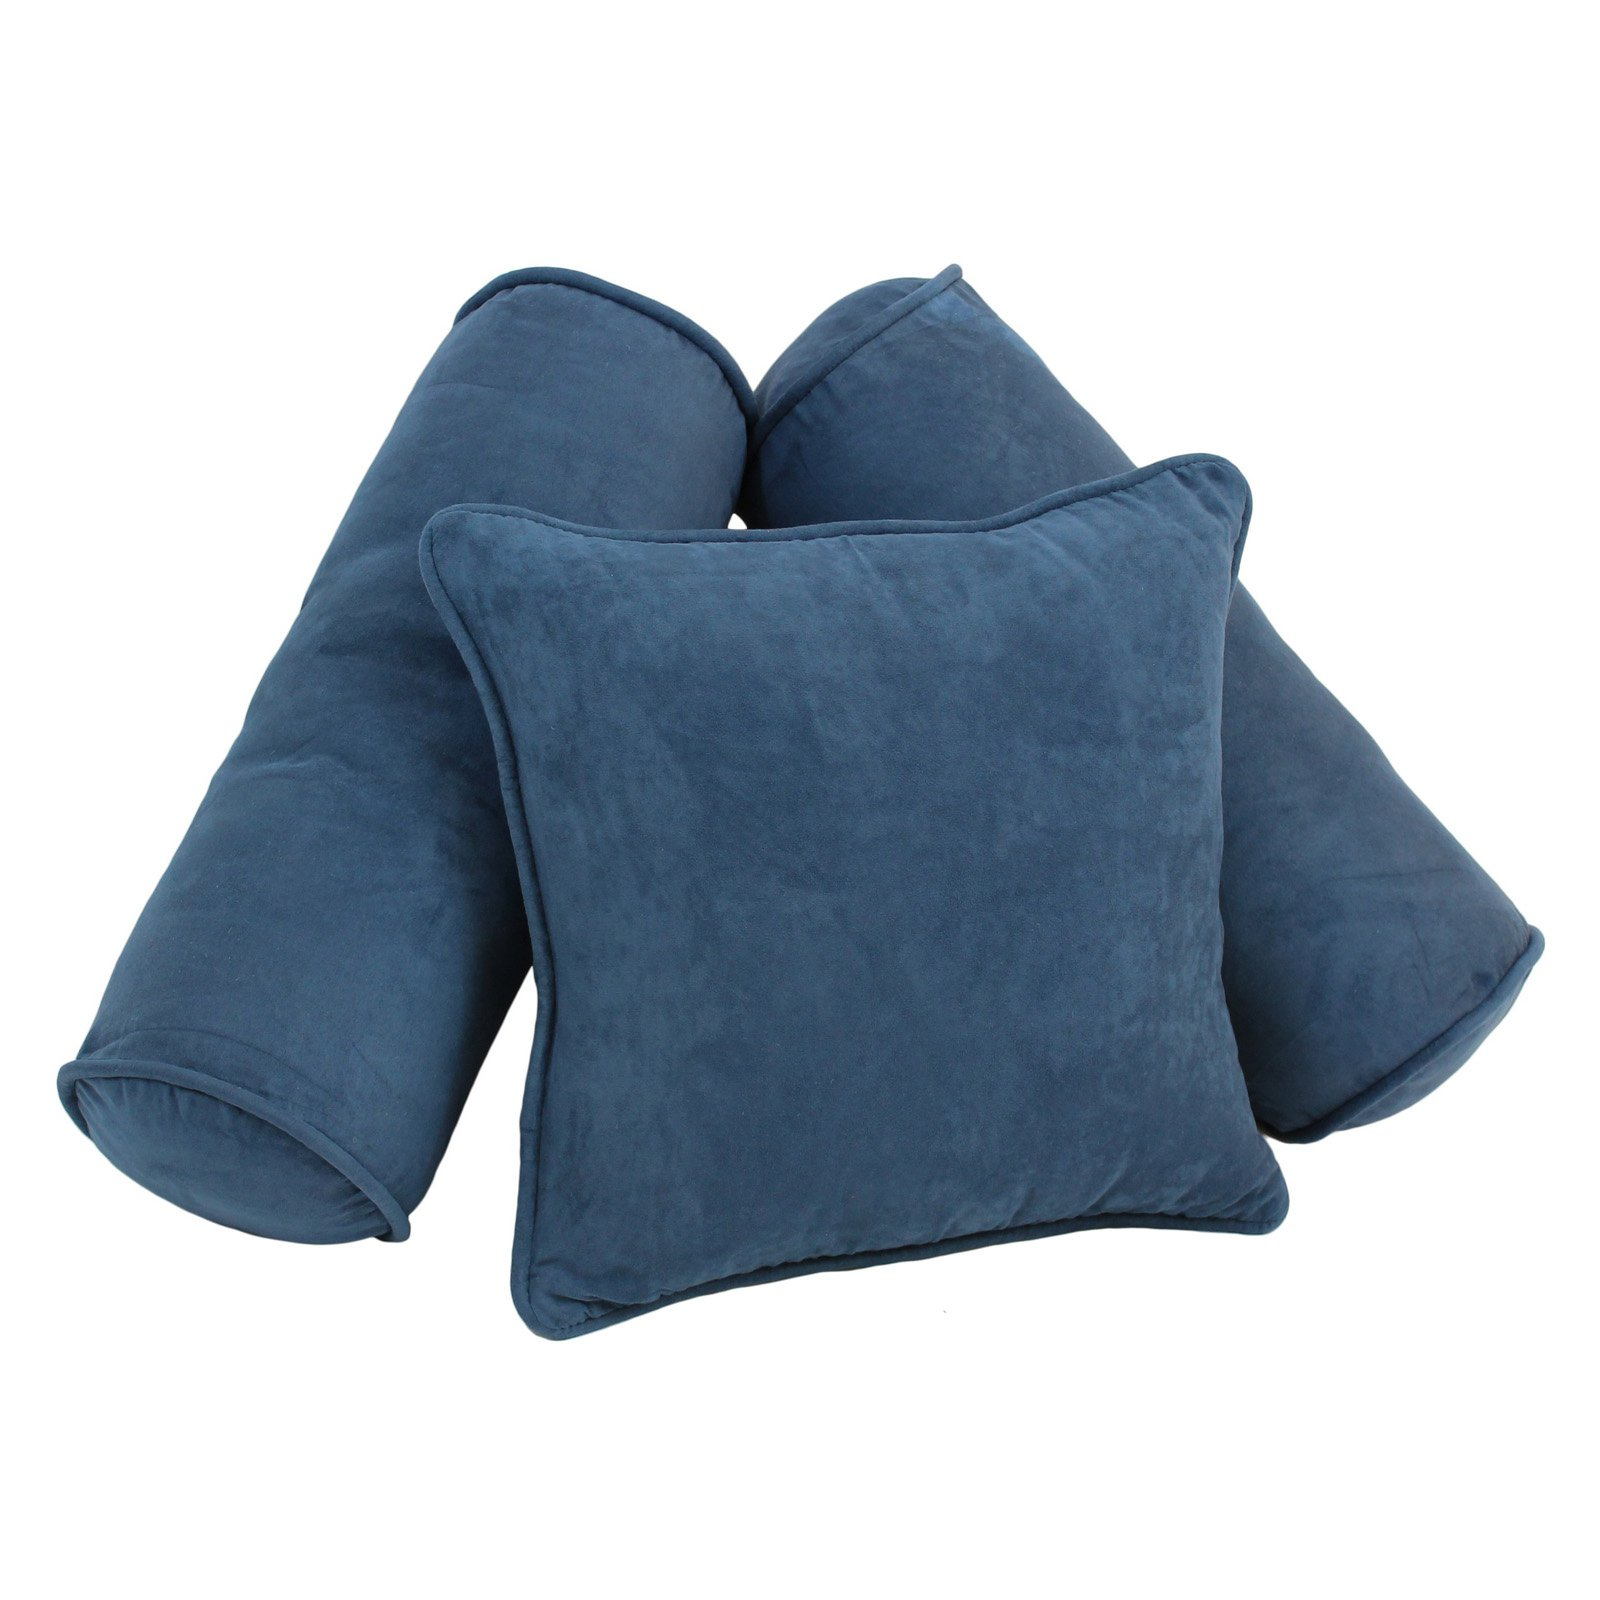 Blazing Needles 3 Piece Microsuede Throw Pillow Set by Blazing Needles